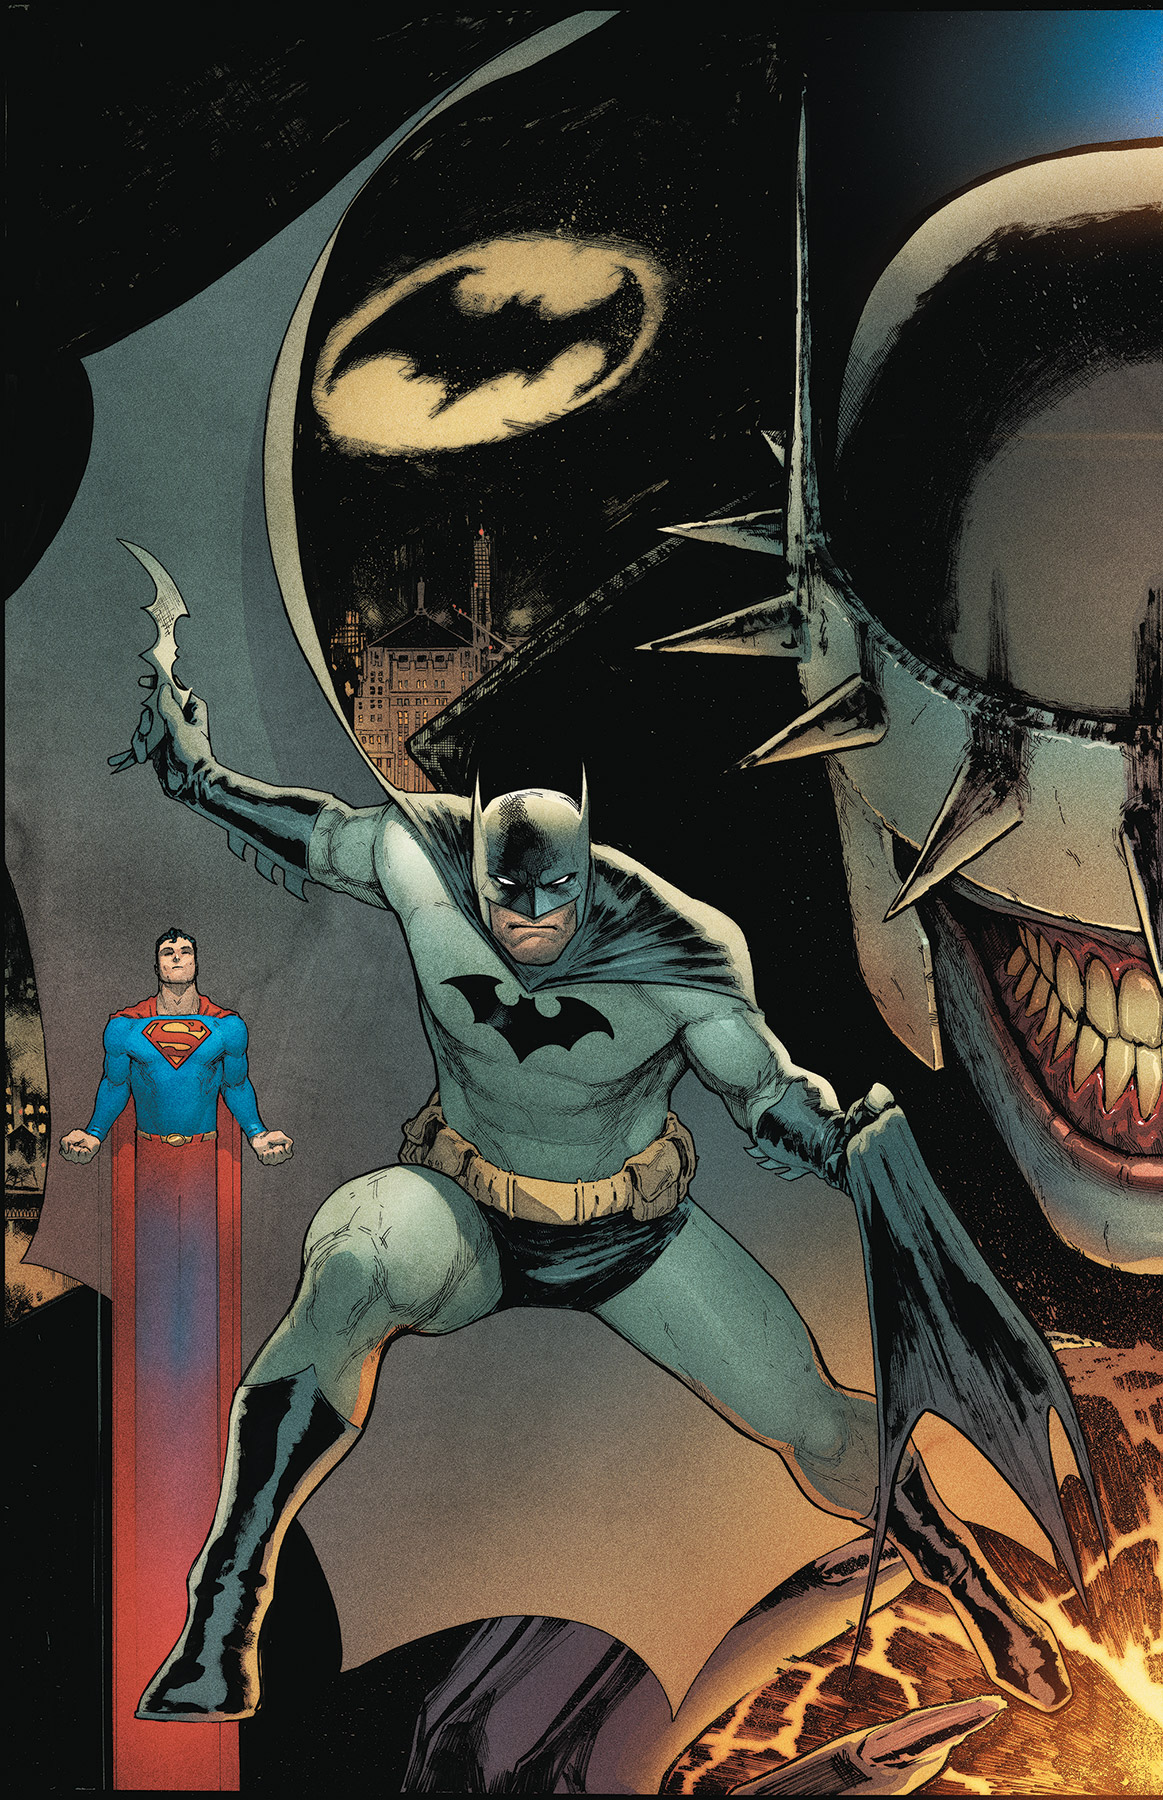 PREVIEWSworld's New Releases For 8/28/2019 - Previews World